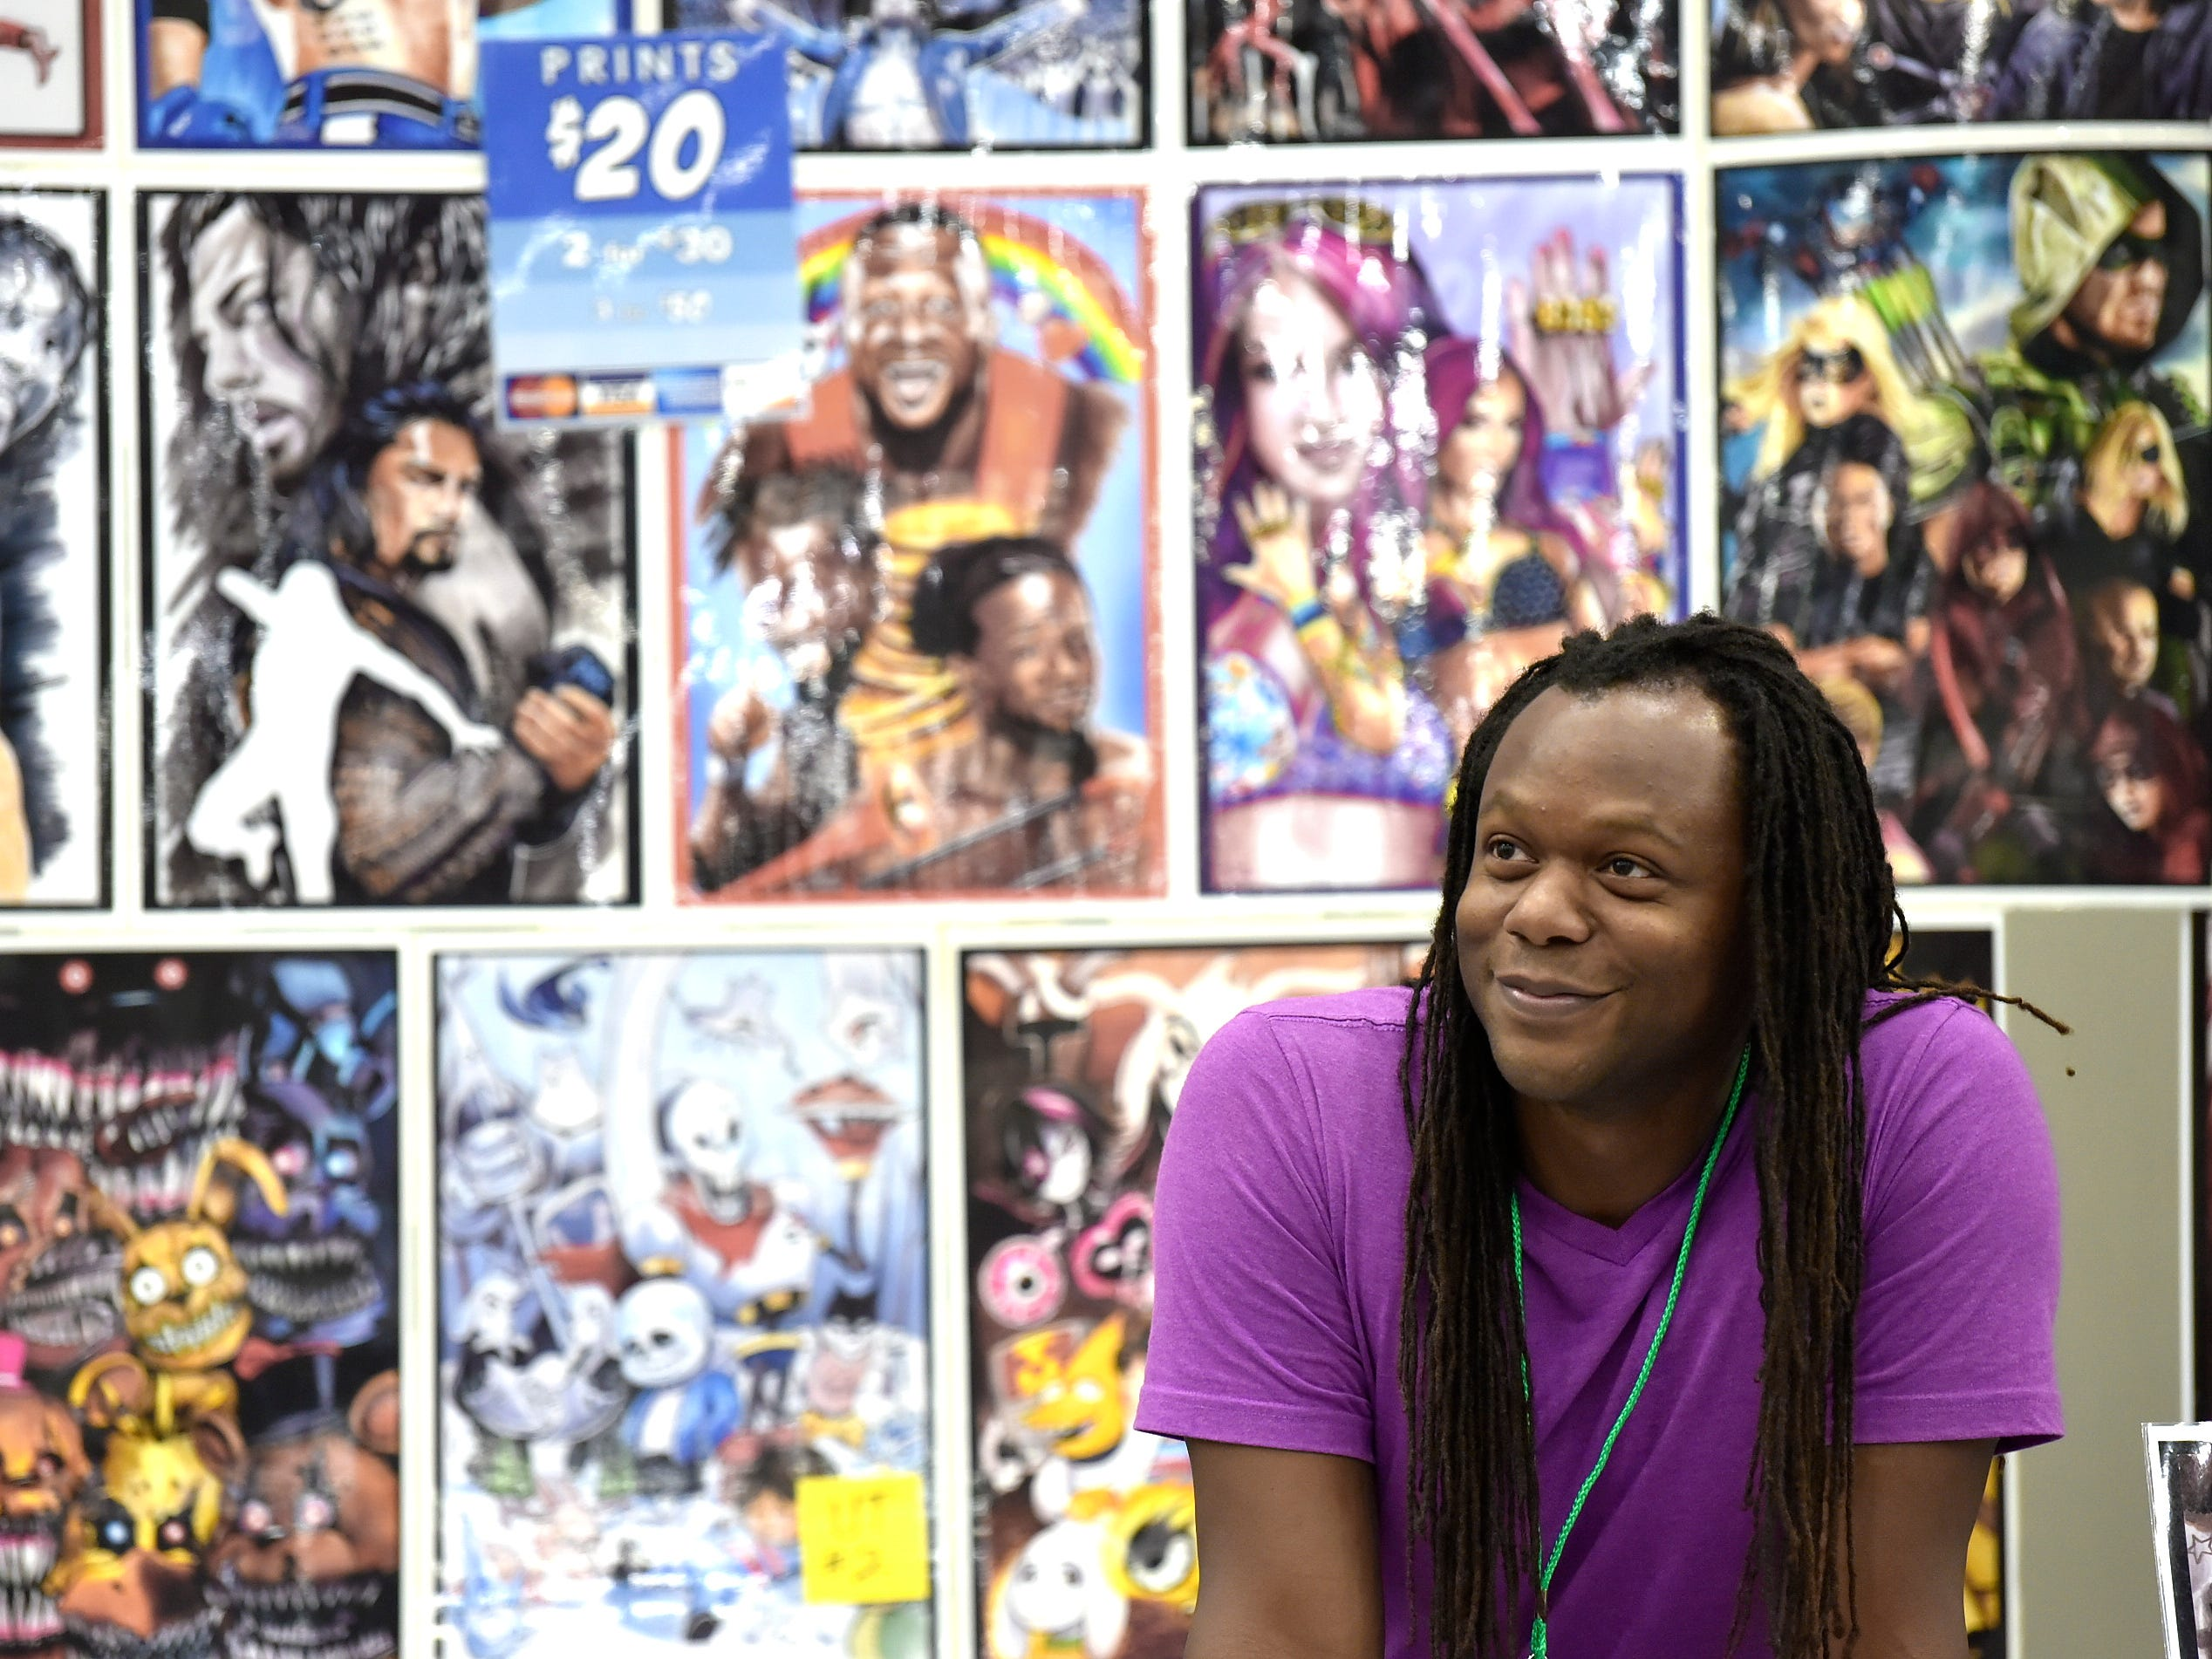 Comic book artist A.J. Moore of San Antonio, Texas chats with customers in front of his creations.